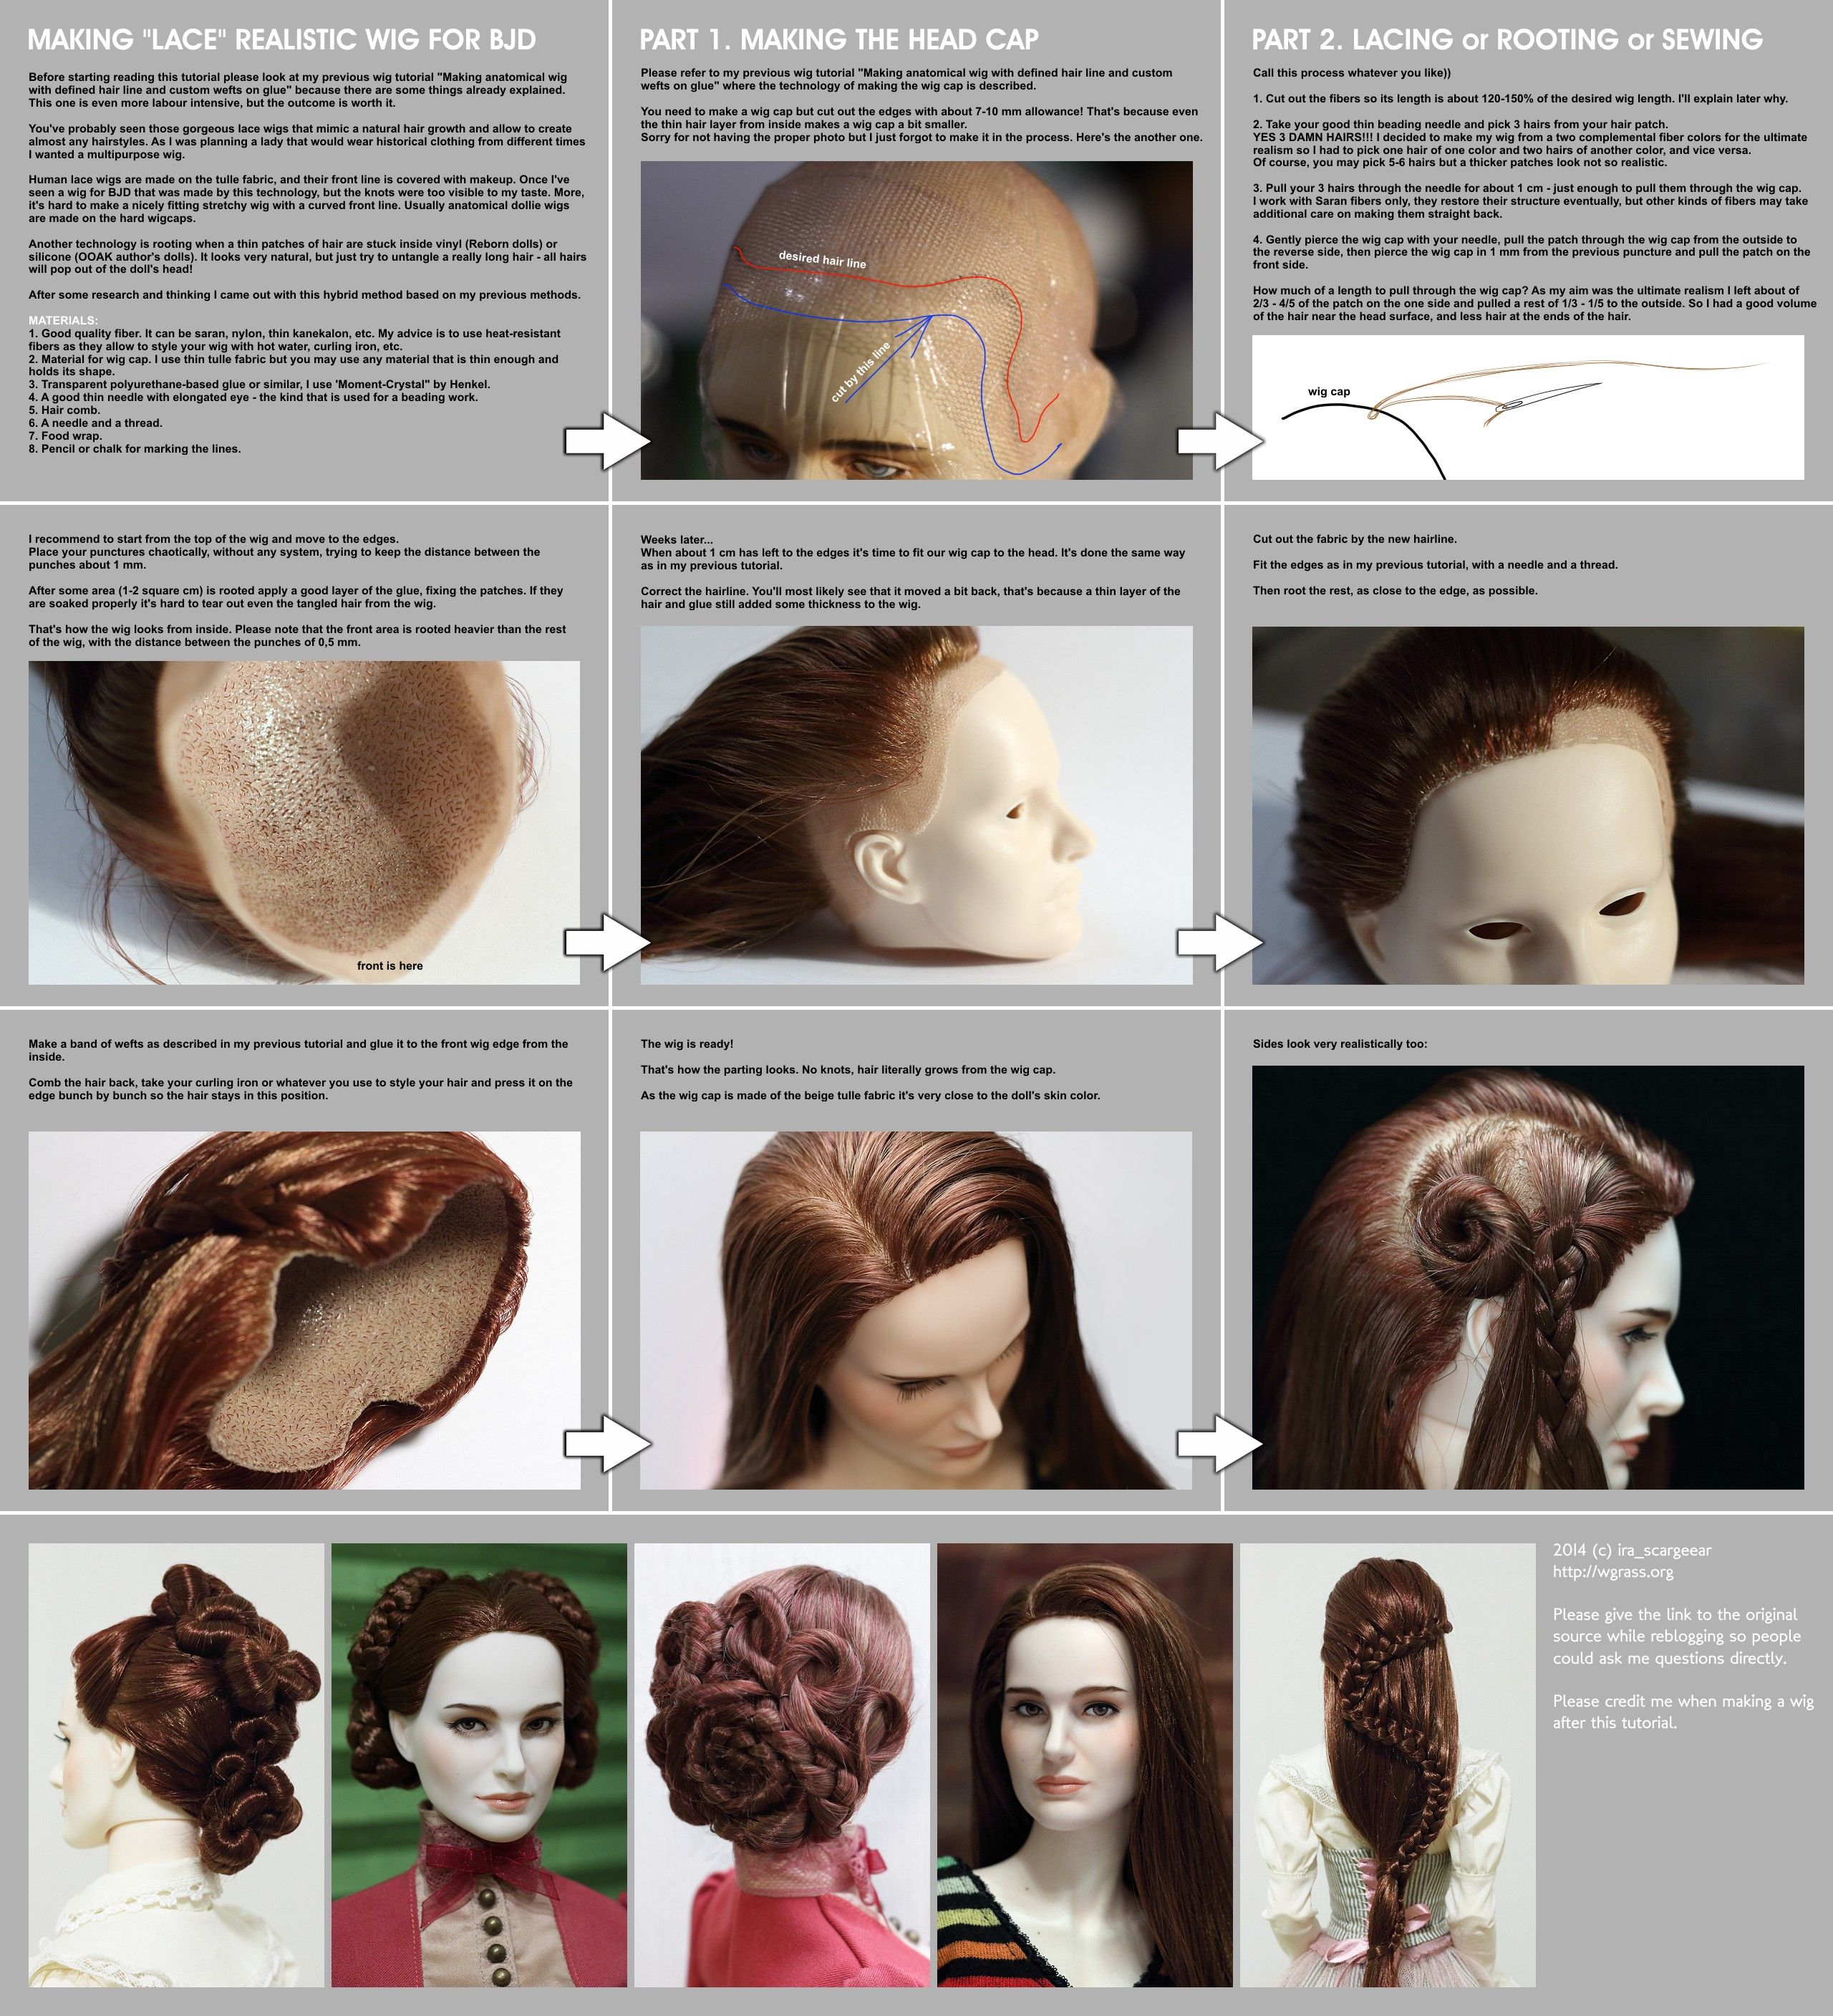 Best Wig Tut Ever Making Lace Realistic Wig For Bjd By Scargeear